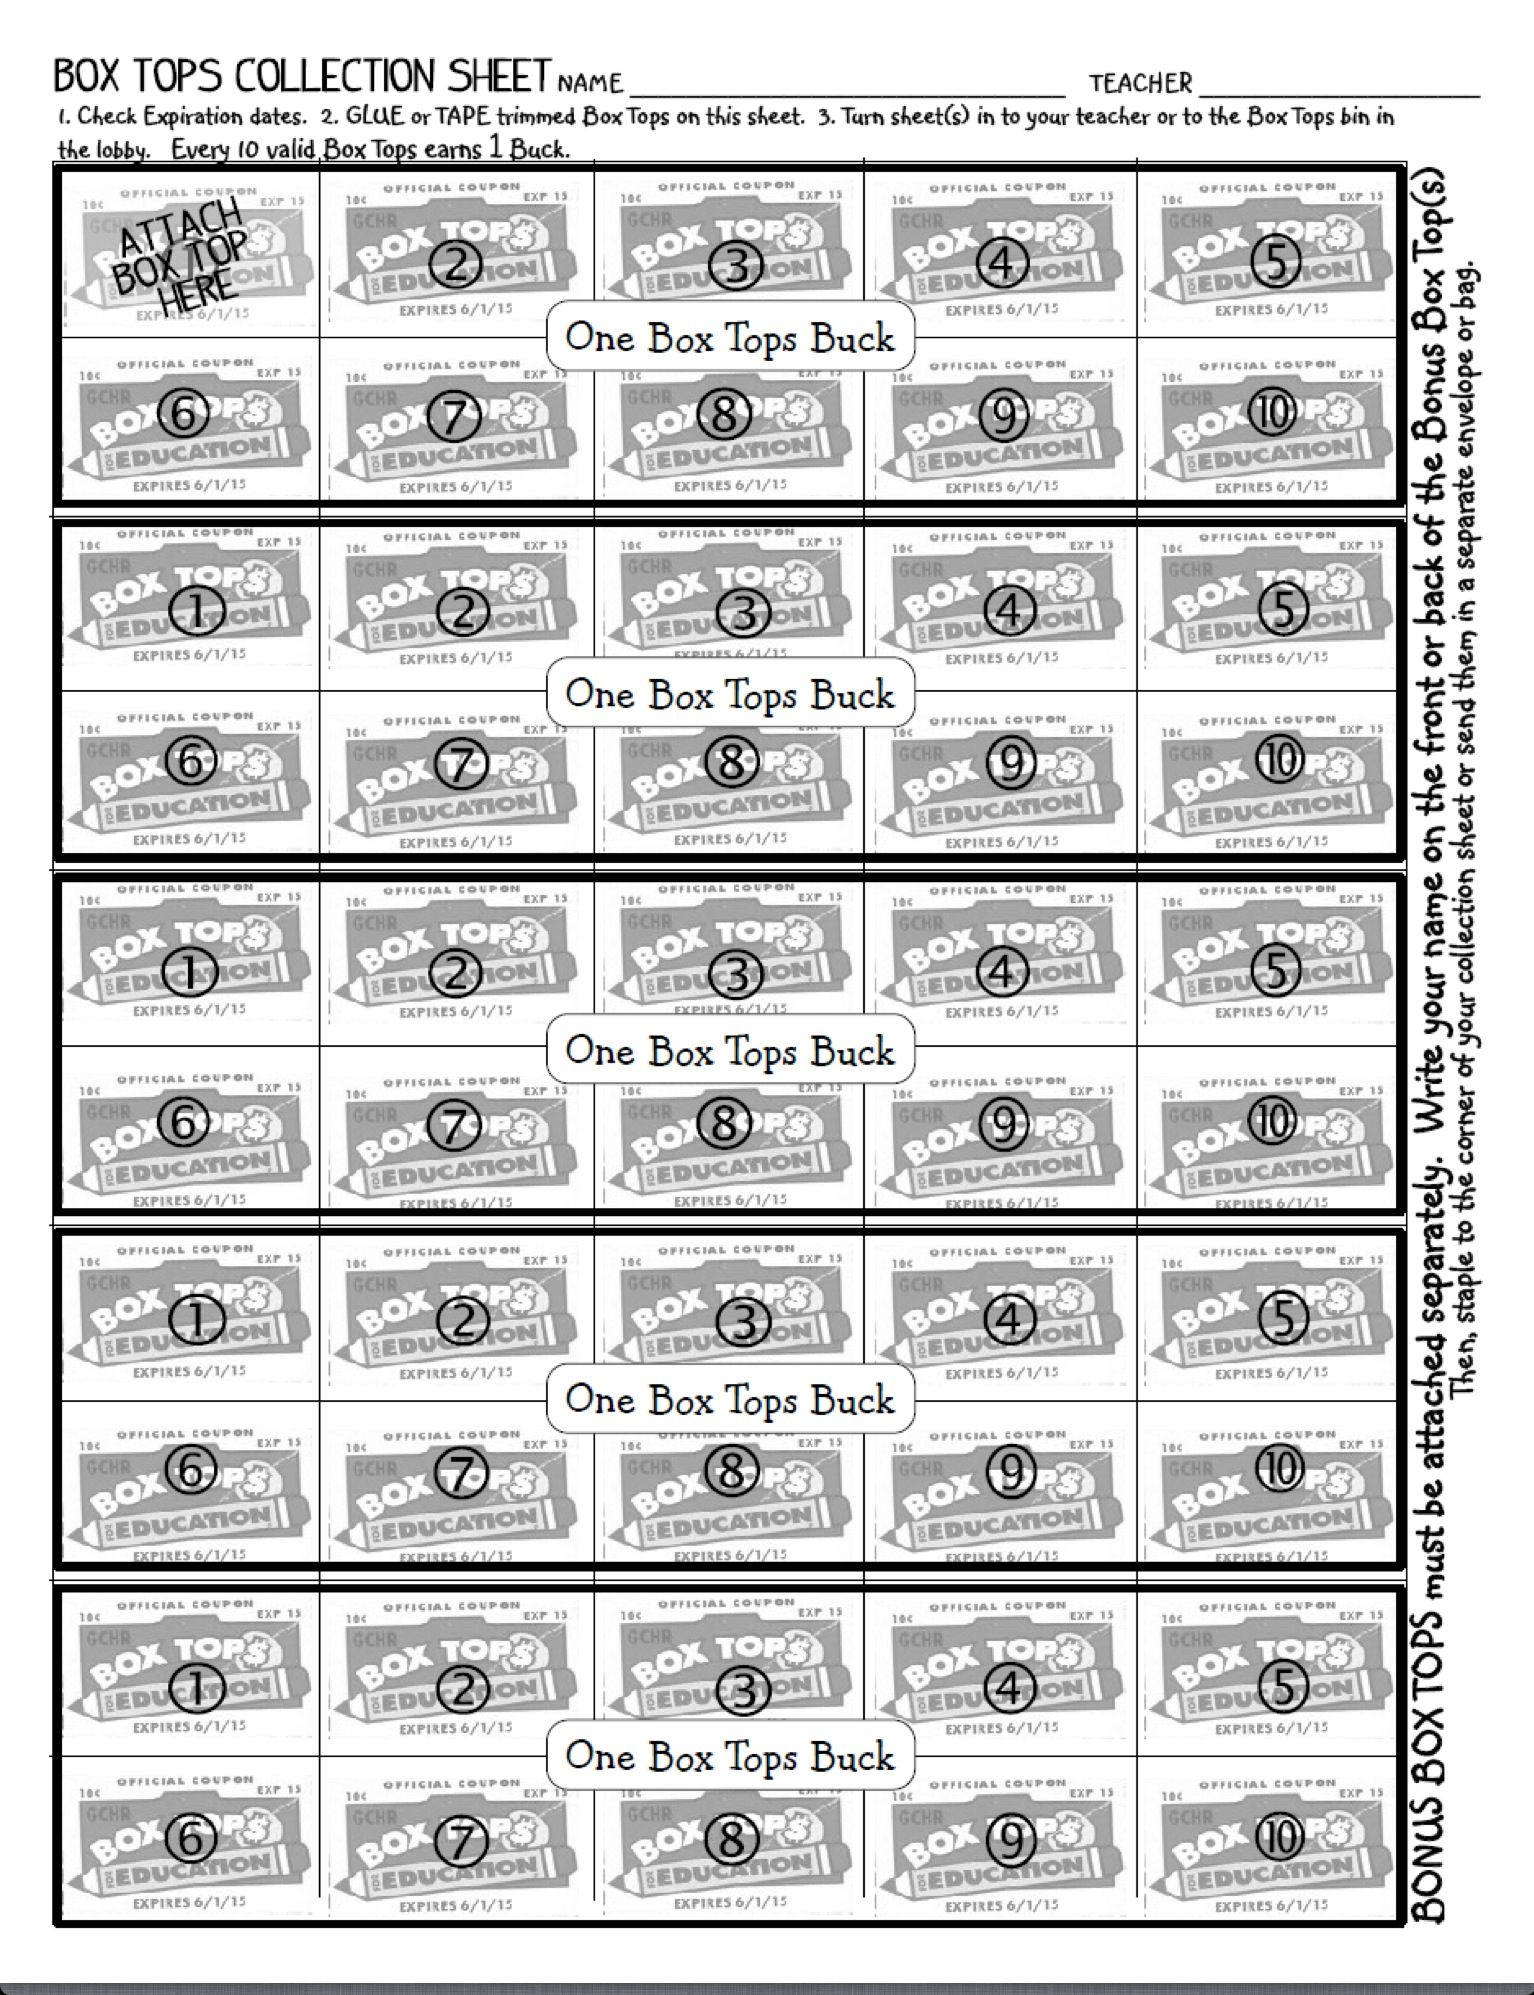 My Box Tops Bucks Collection Sheet Set Up For 50 Box Tops Kids Spend Their Bucks At The Box